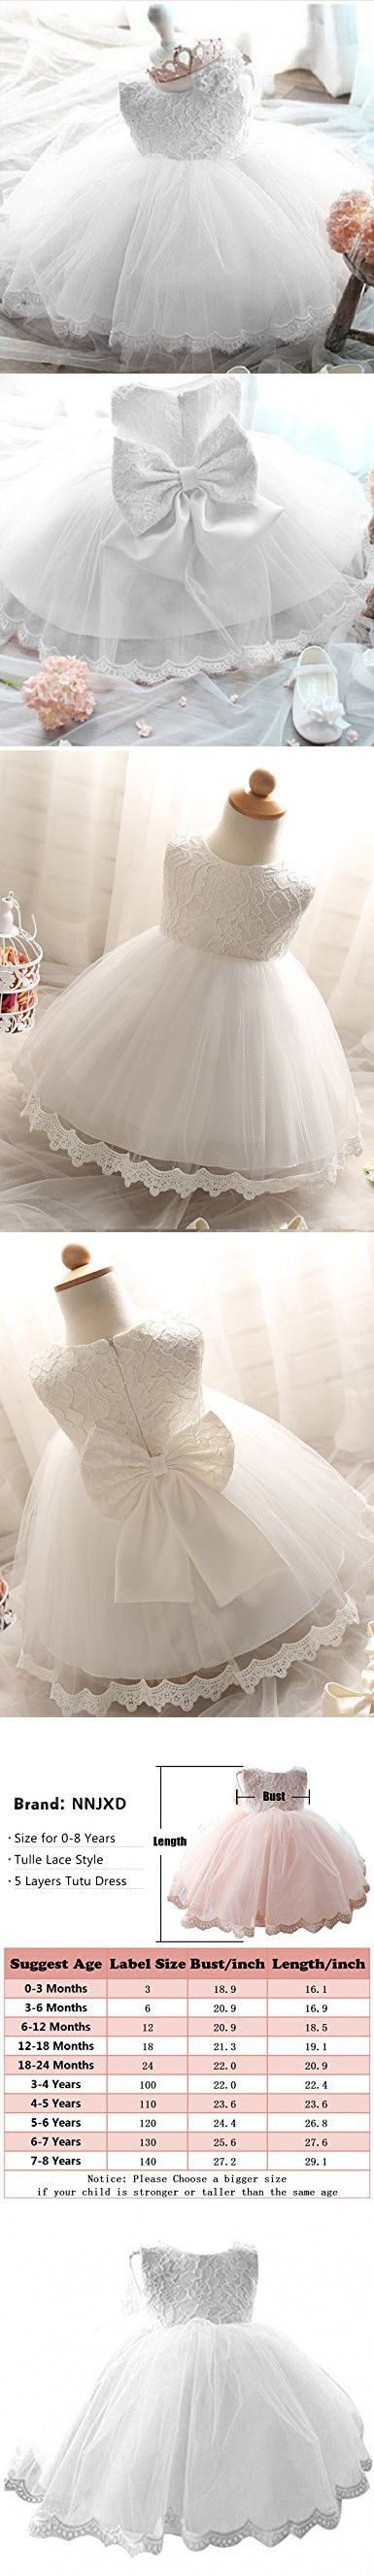 NNJXD Girls' Tulle Flower Princess Wedding Dress For Toddler and Baby Girl White 0-3 Months